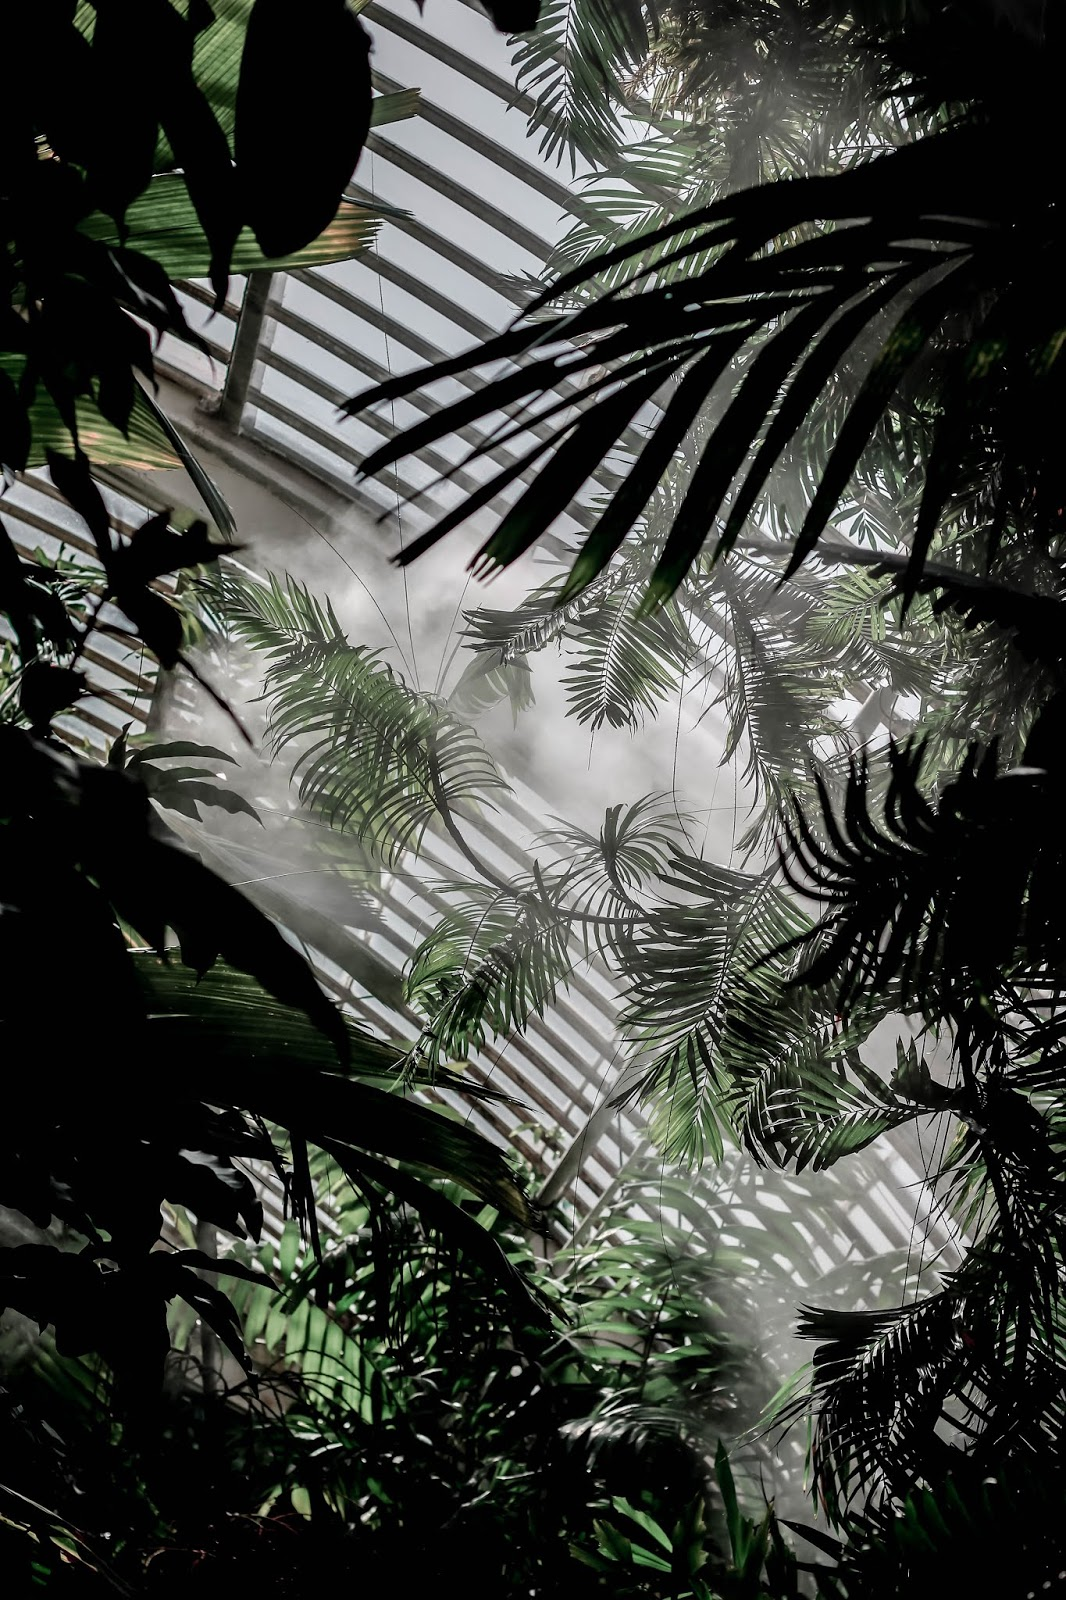 Kew Gardens Humidity The Palm House